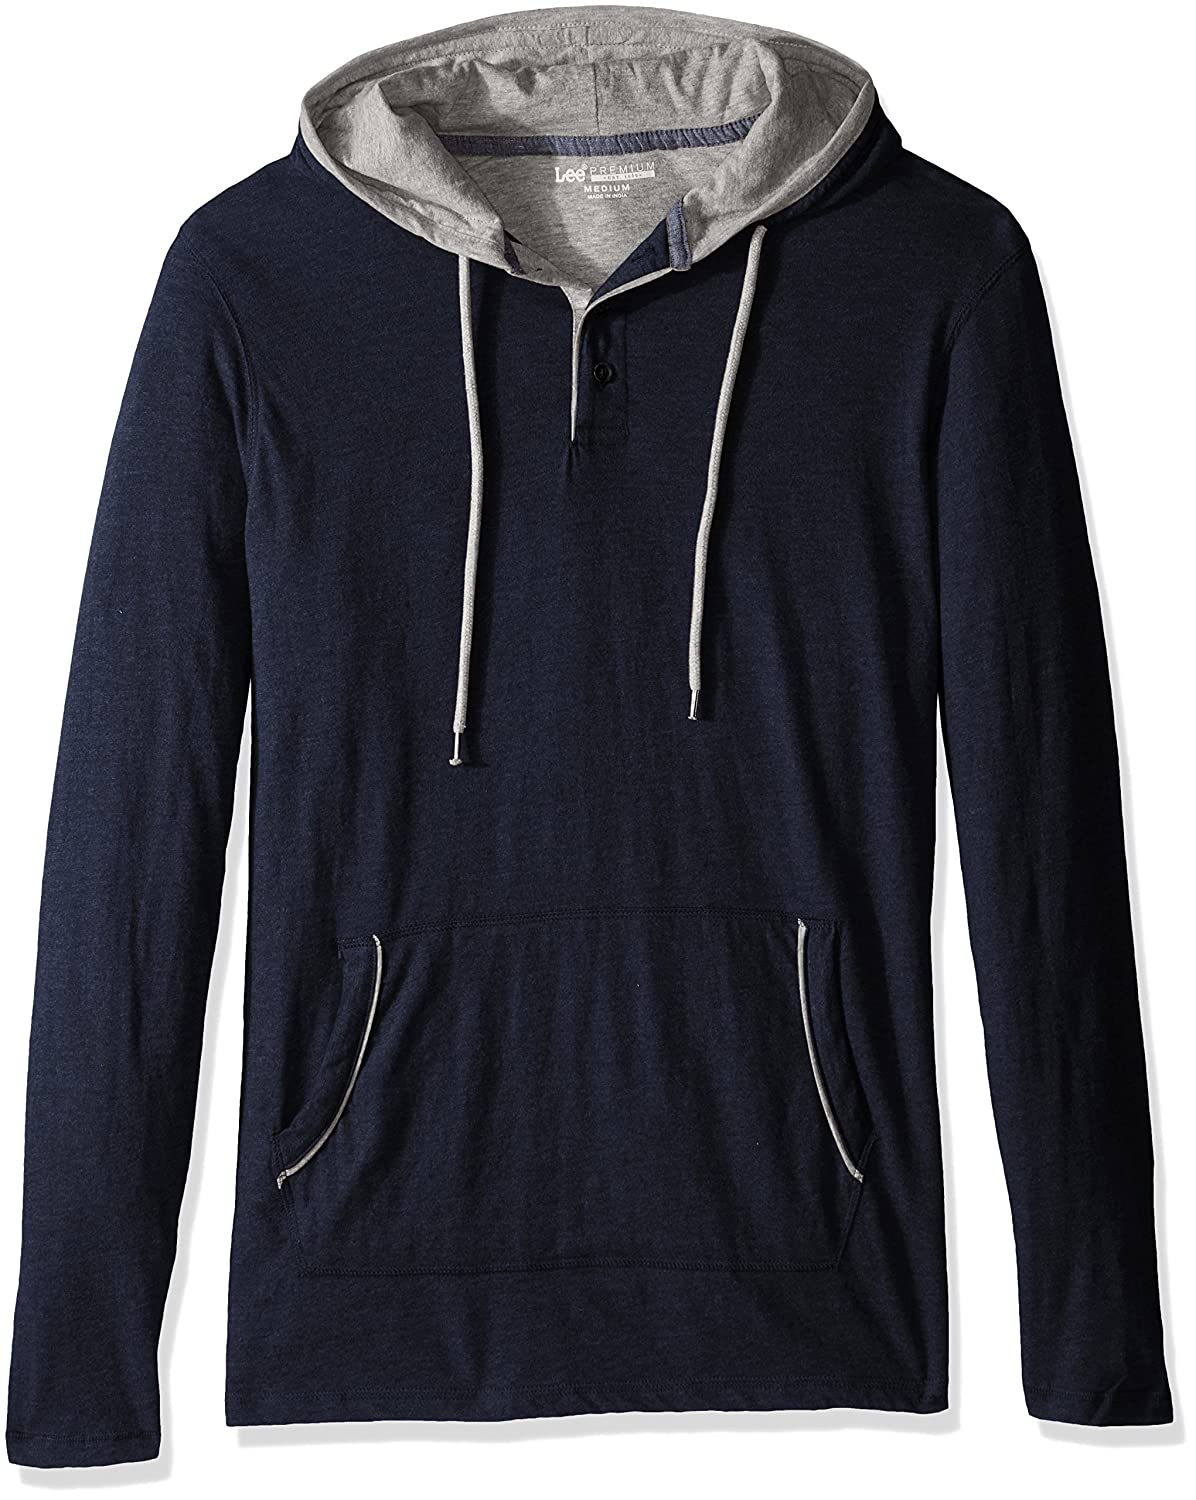 Lee Men's Button Hoodie (Various Colors and Sizes Including Big and Tall) Lee Tops LM36HD161